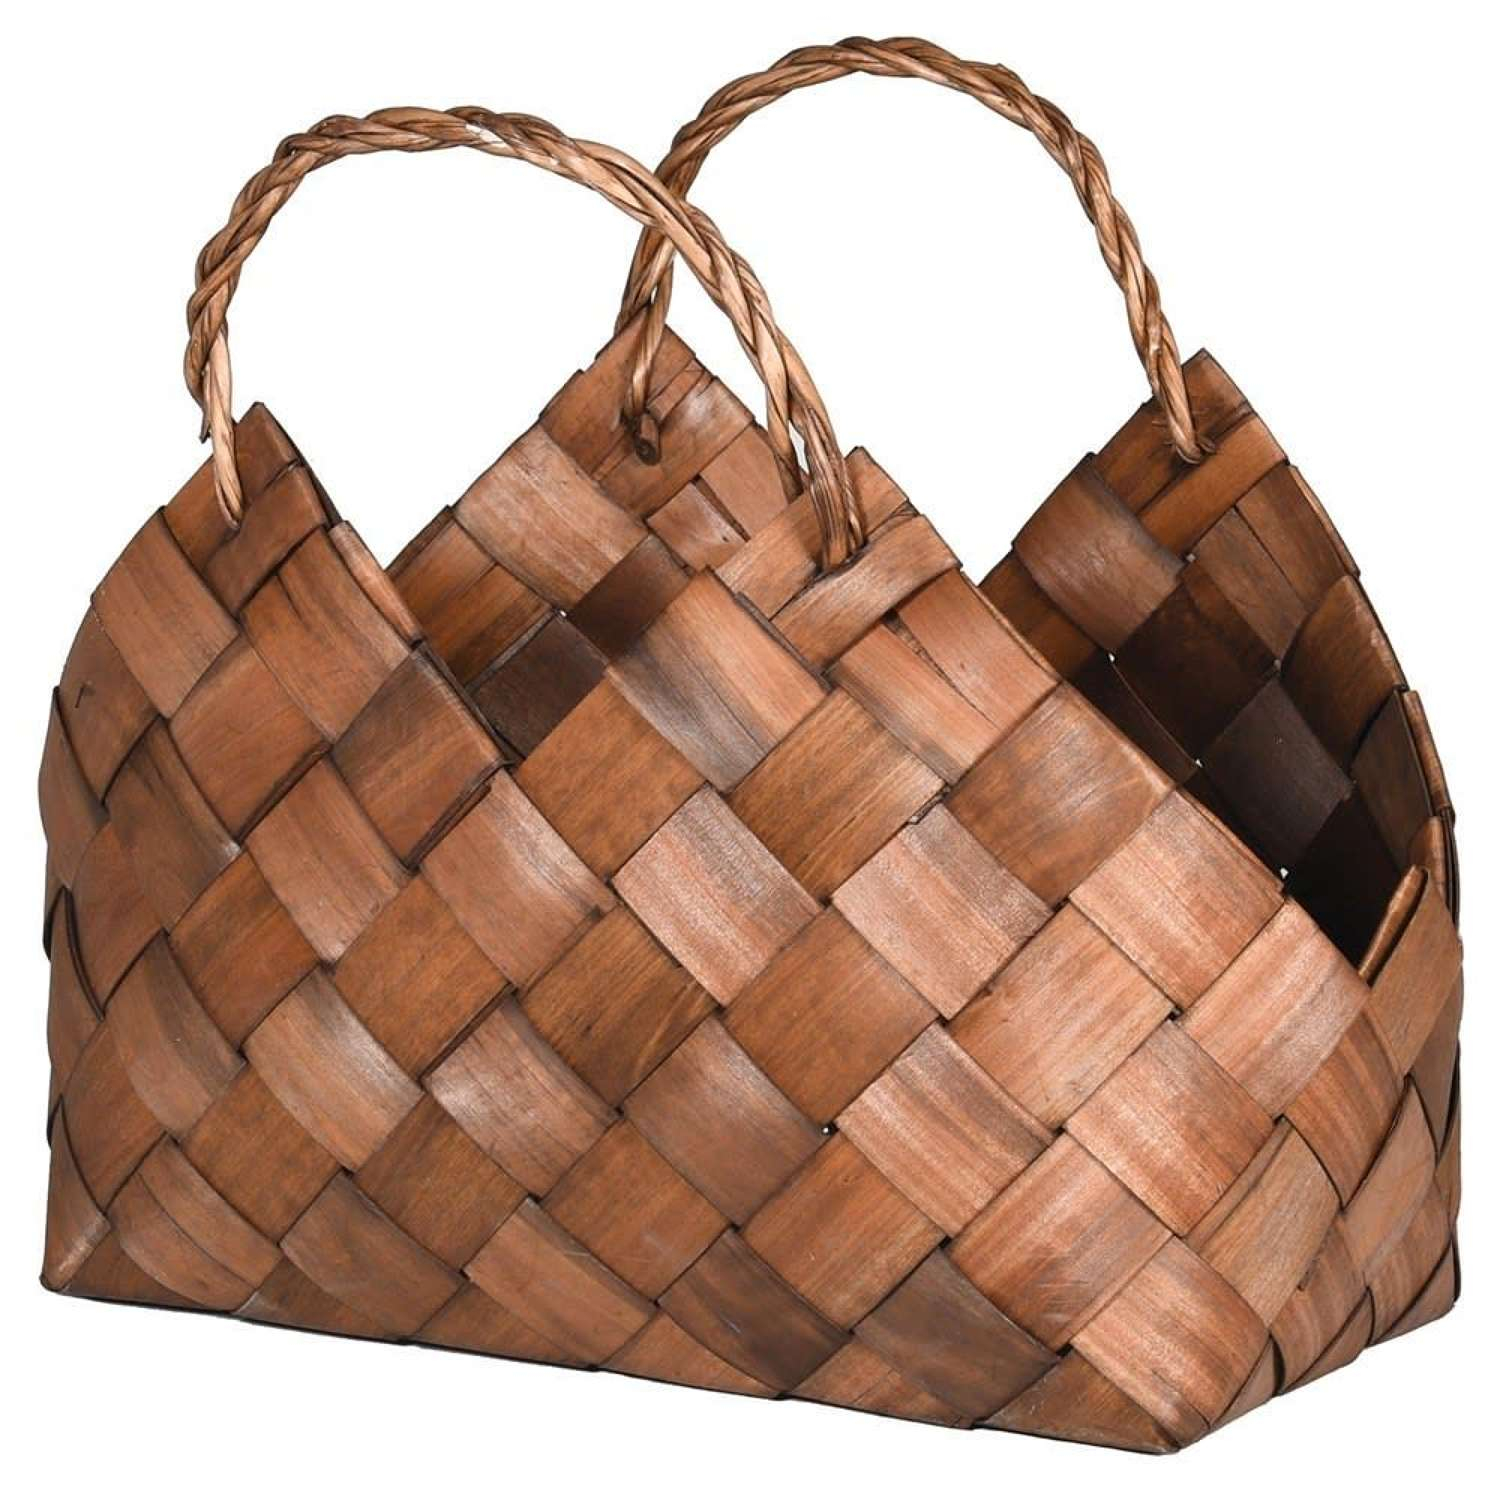 Large Woven Decorative Willow Basket